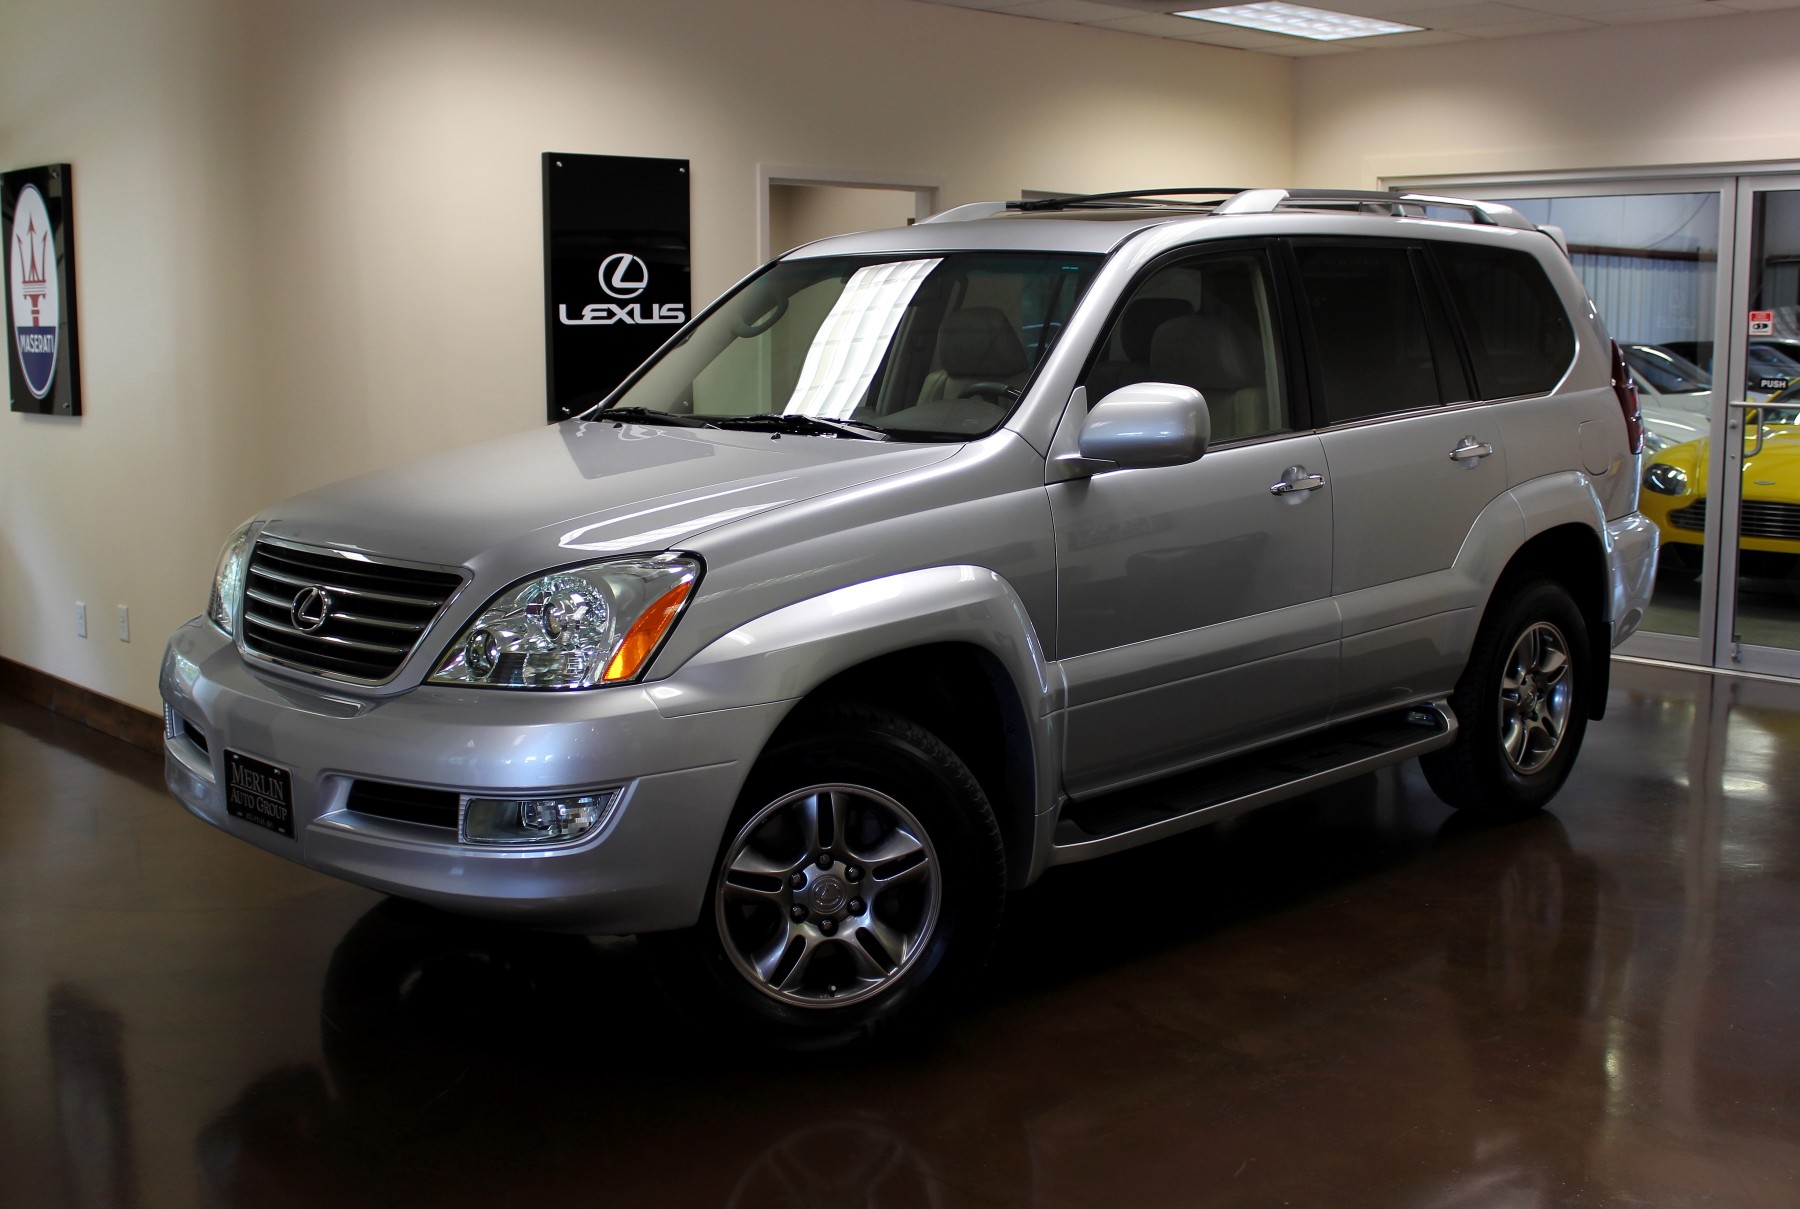 used 2008 lexus gx 470 stock p2858 ultra luxury car from. Black Bedroom Furniture Sets. Home Design Ideas